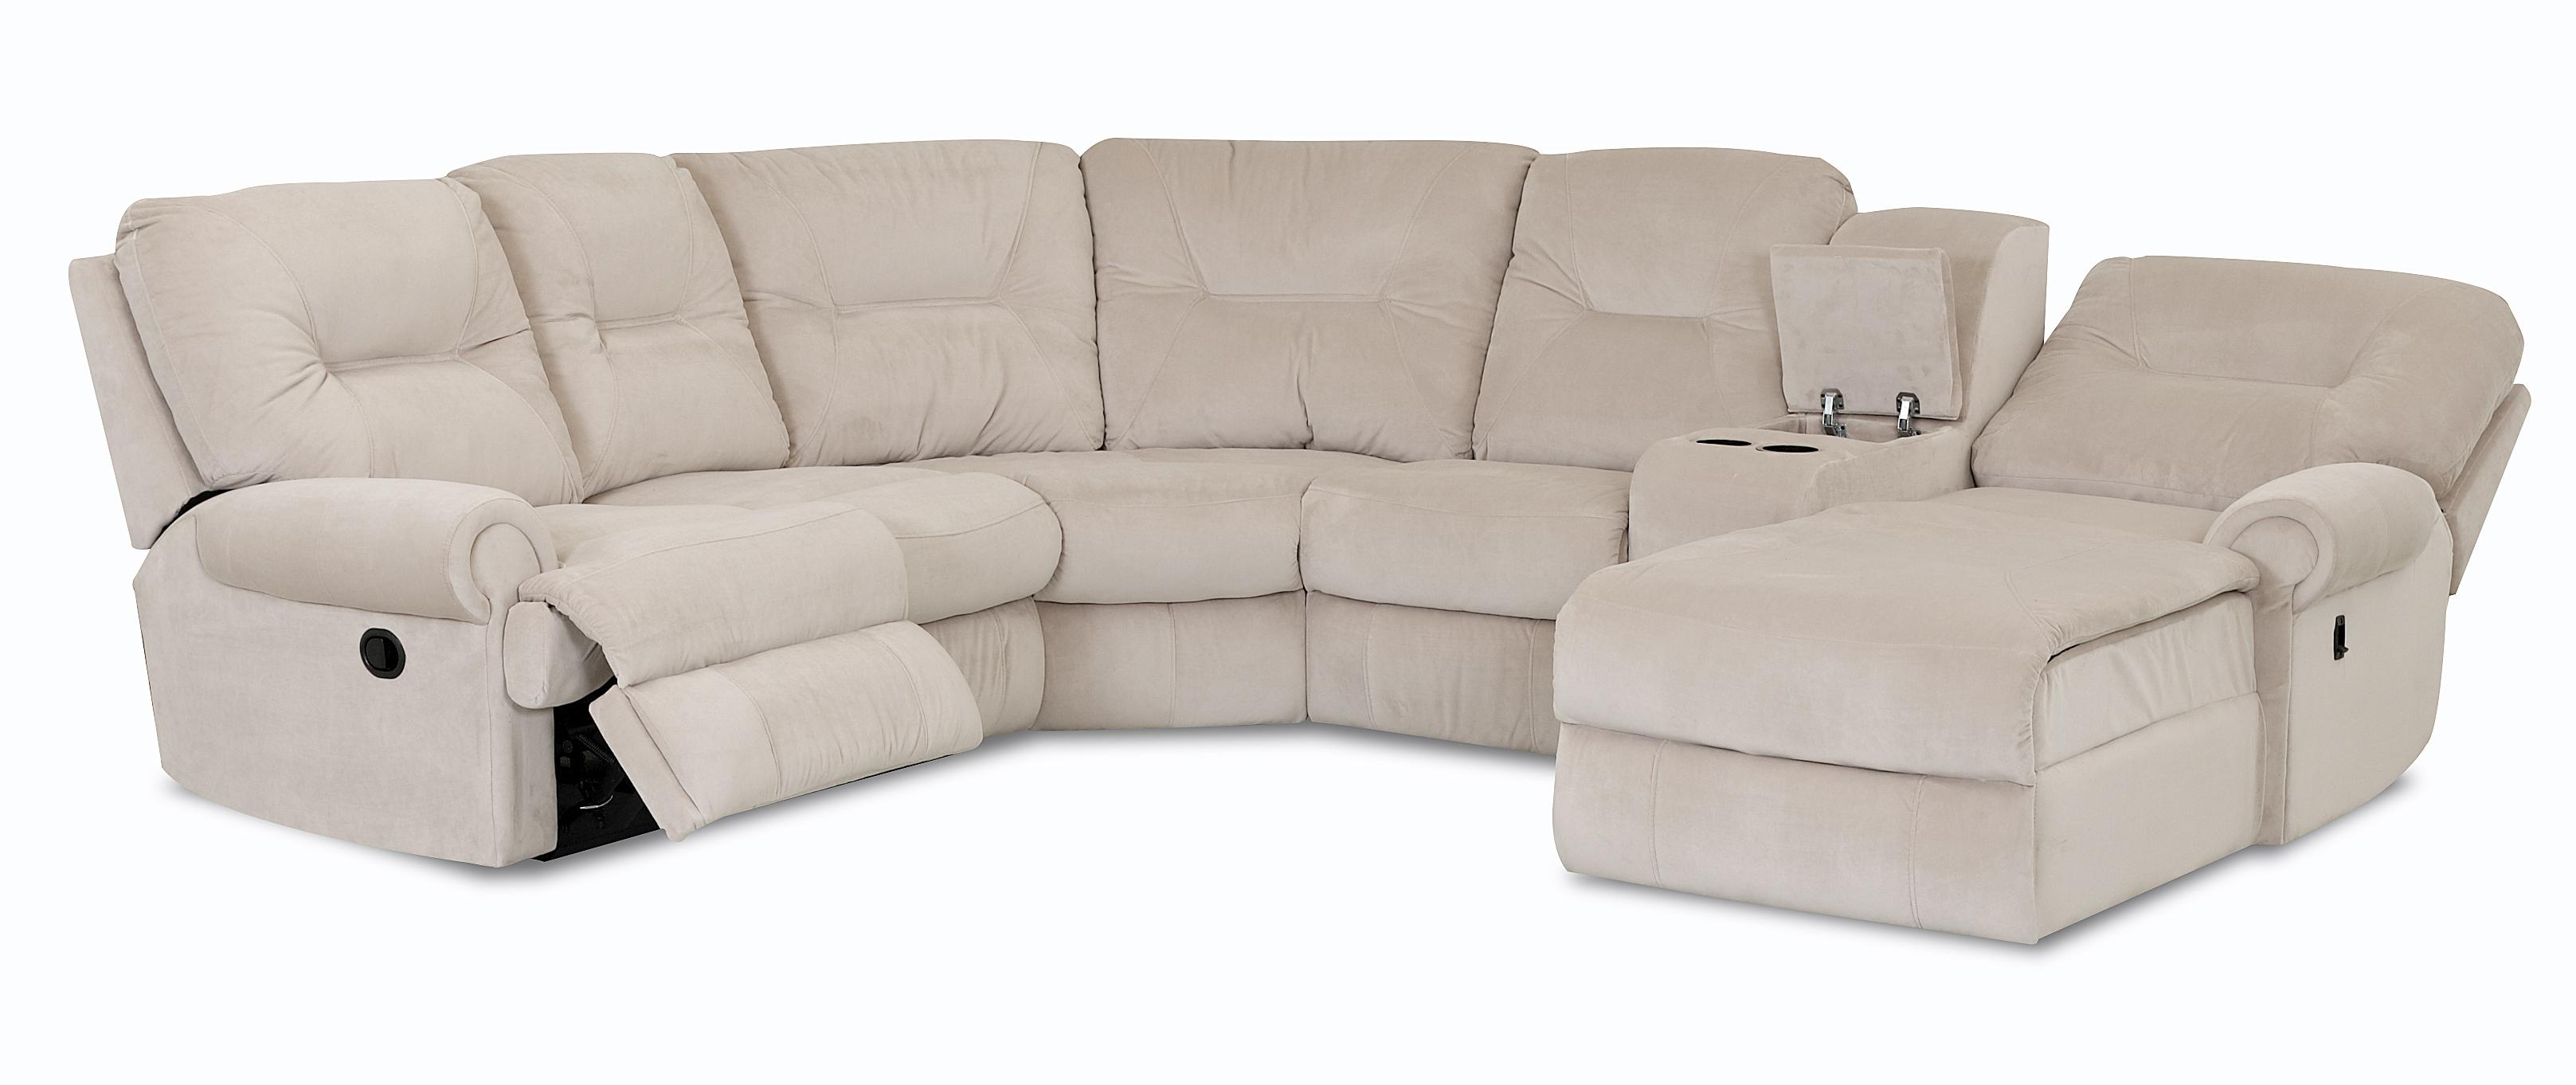 Traditional reclining sectional sofa by klaussner wolf for Traditional sectional